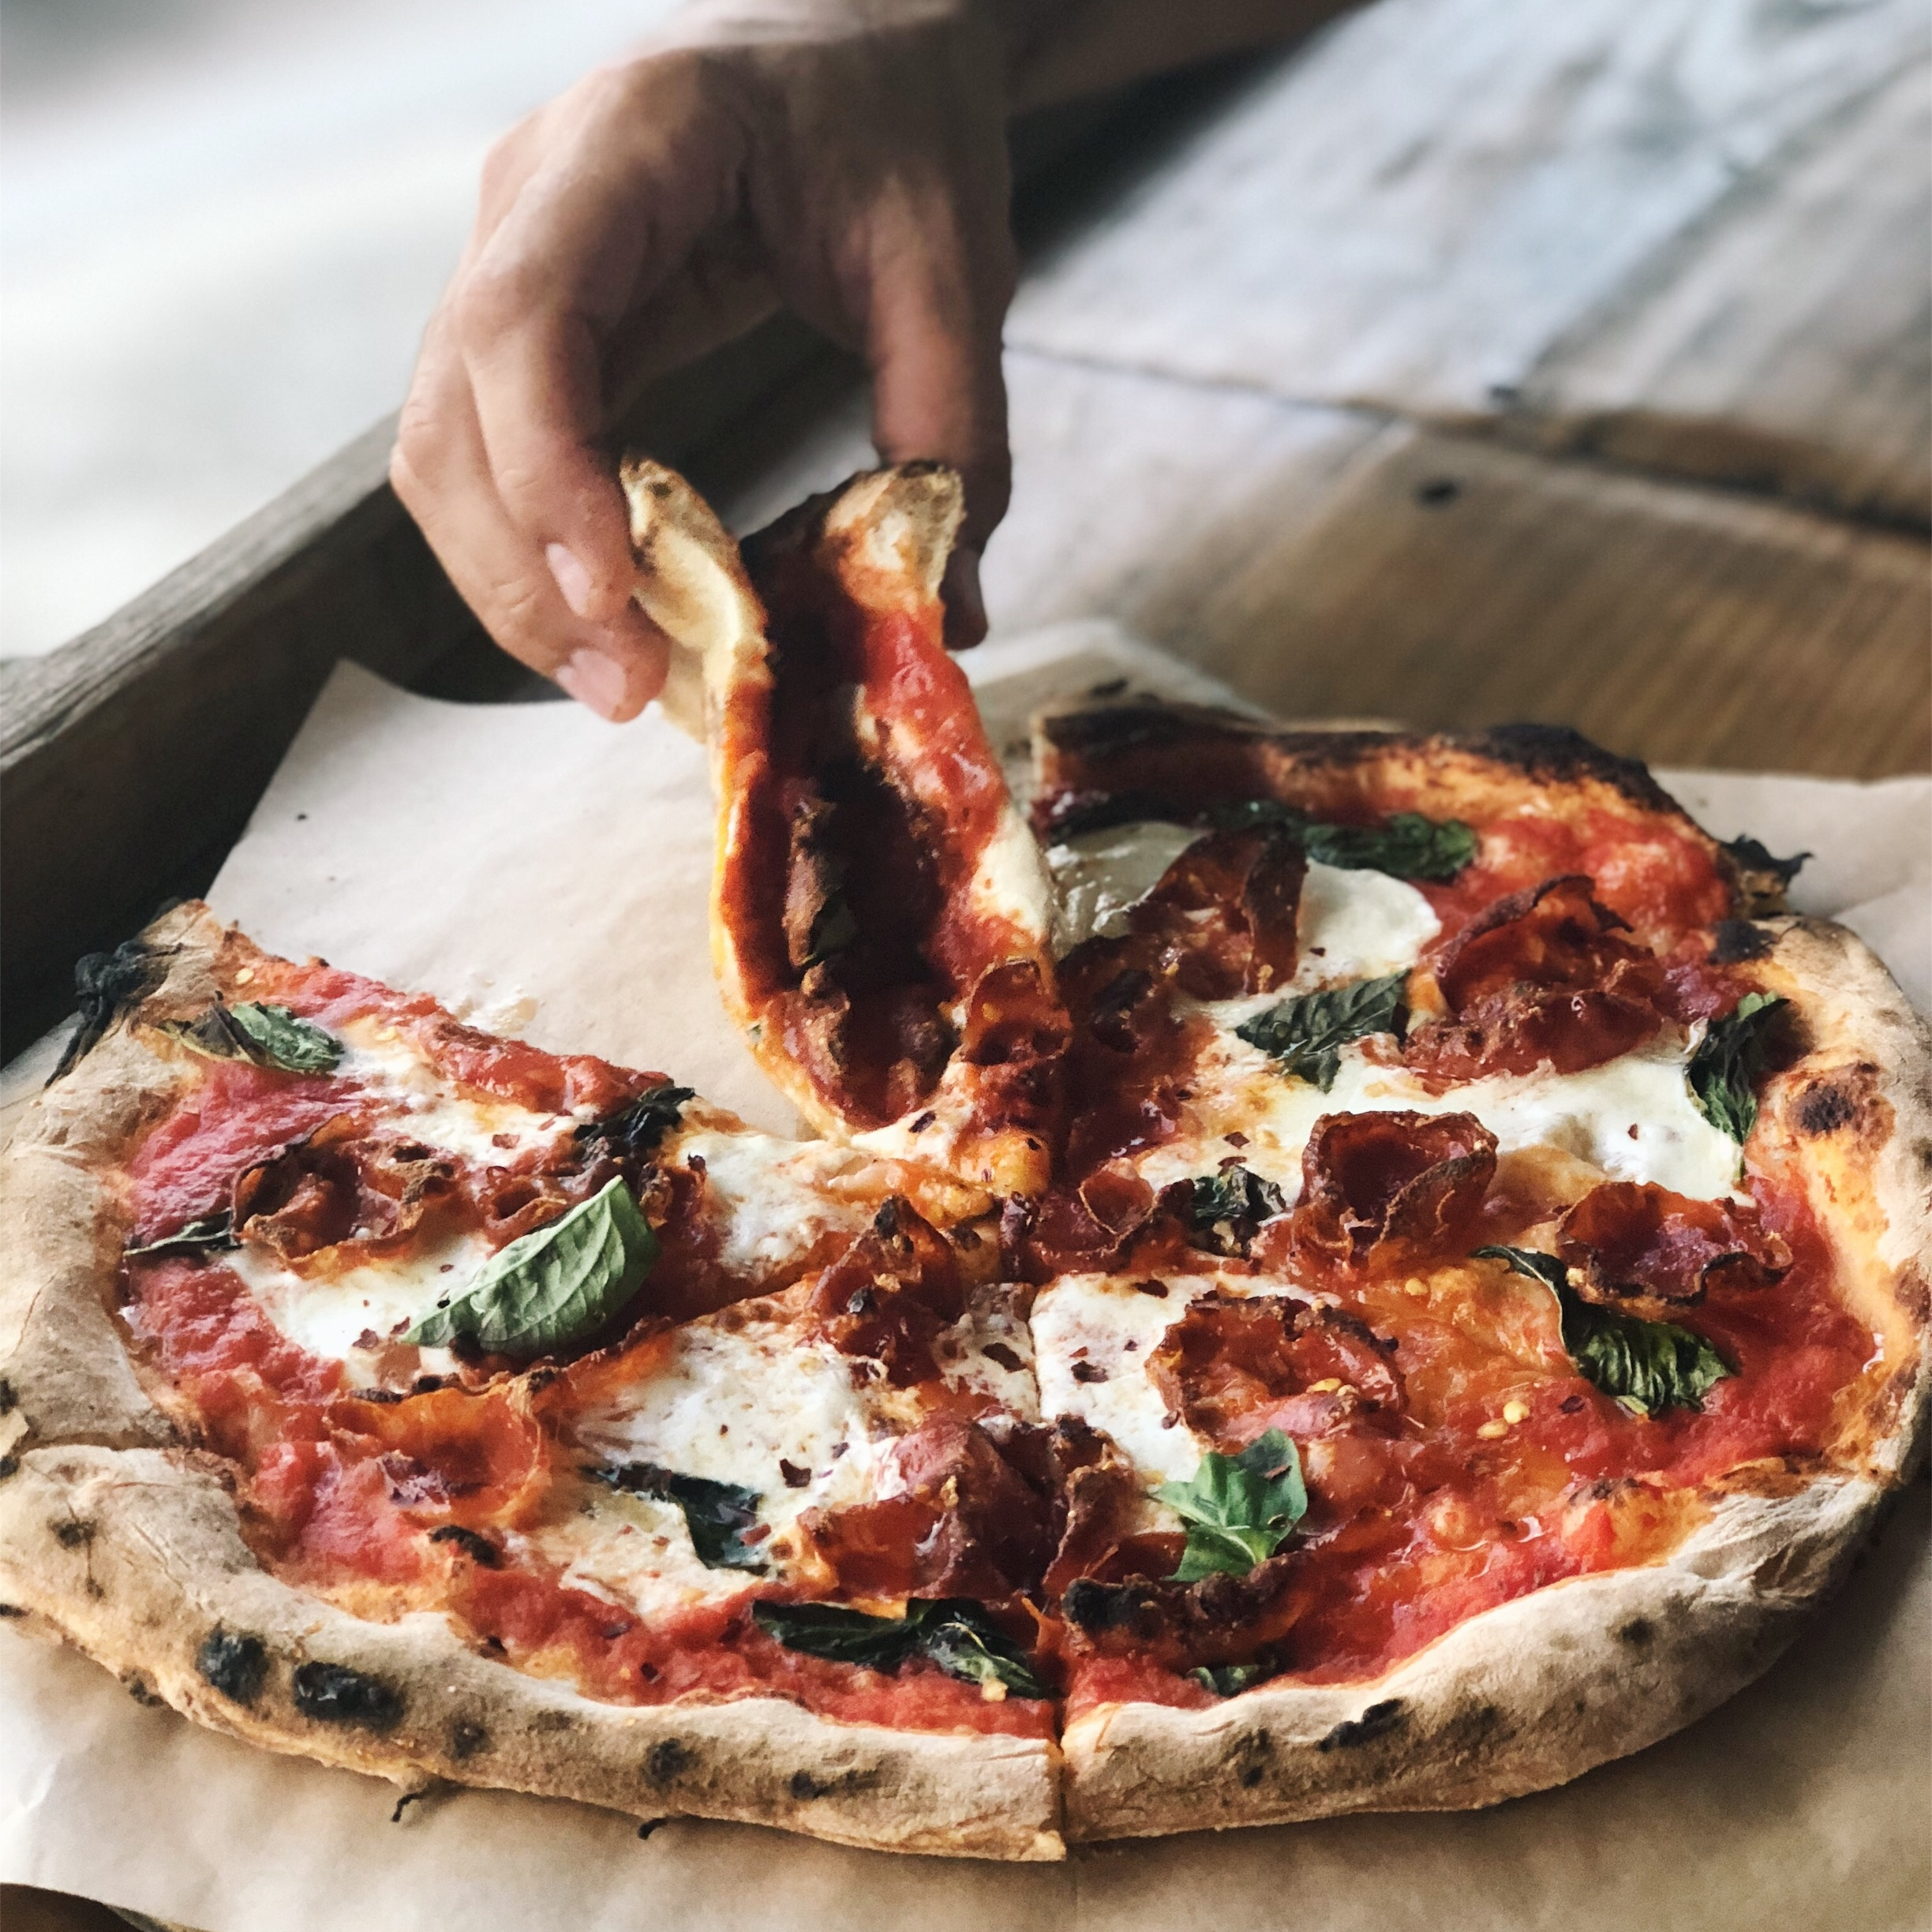 PiZZA PARADISE - Wood-fired savory pizza perfection.